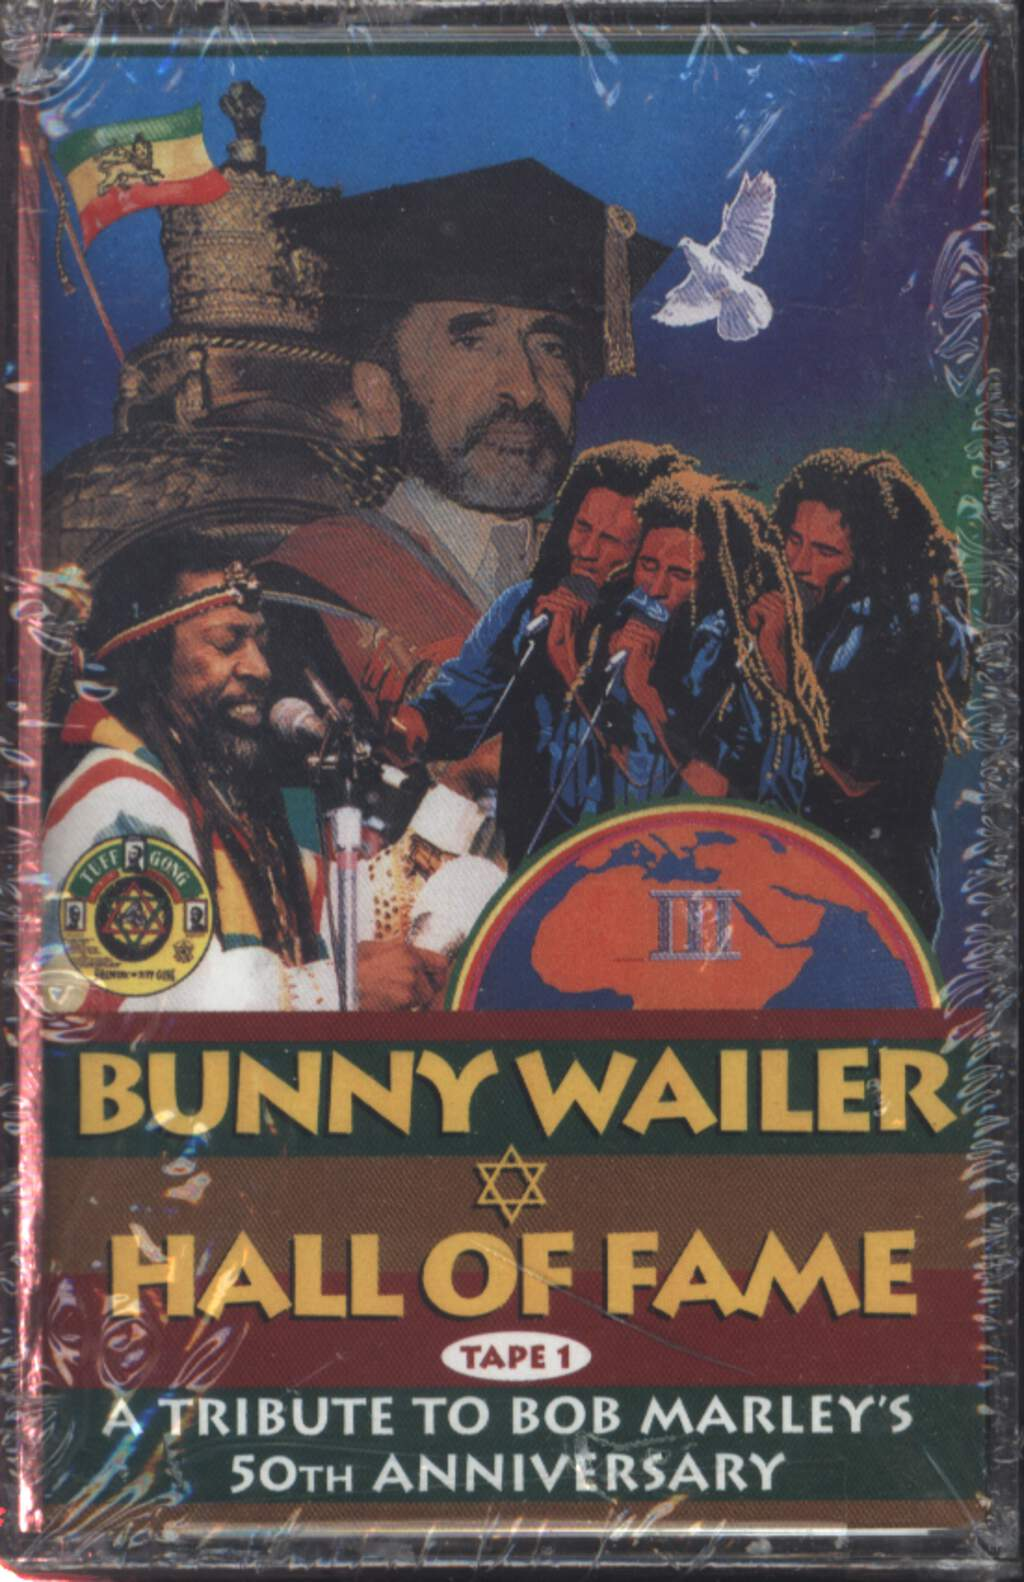 Bunny Wailer: Hall Of Fame A Tribute To Bob Marley's 50th Anniversary, Compact Cassette